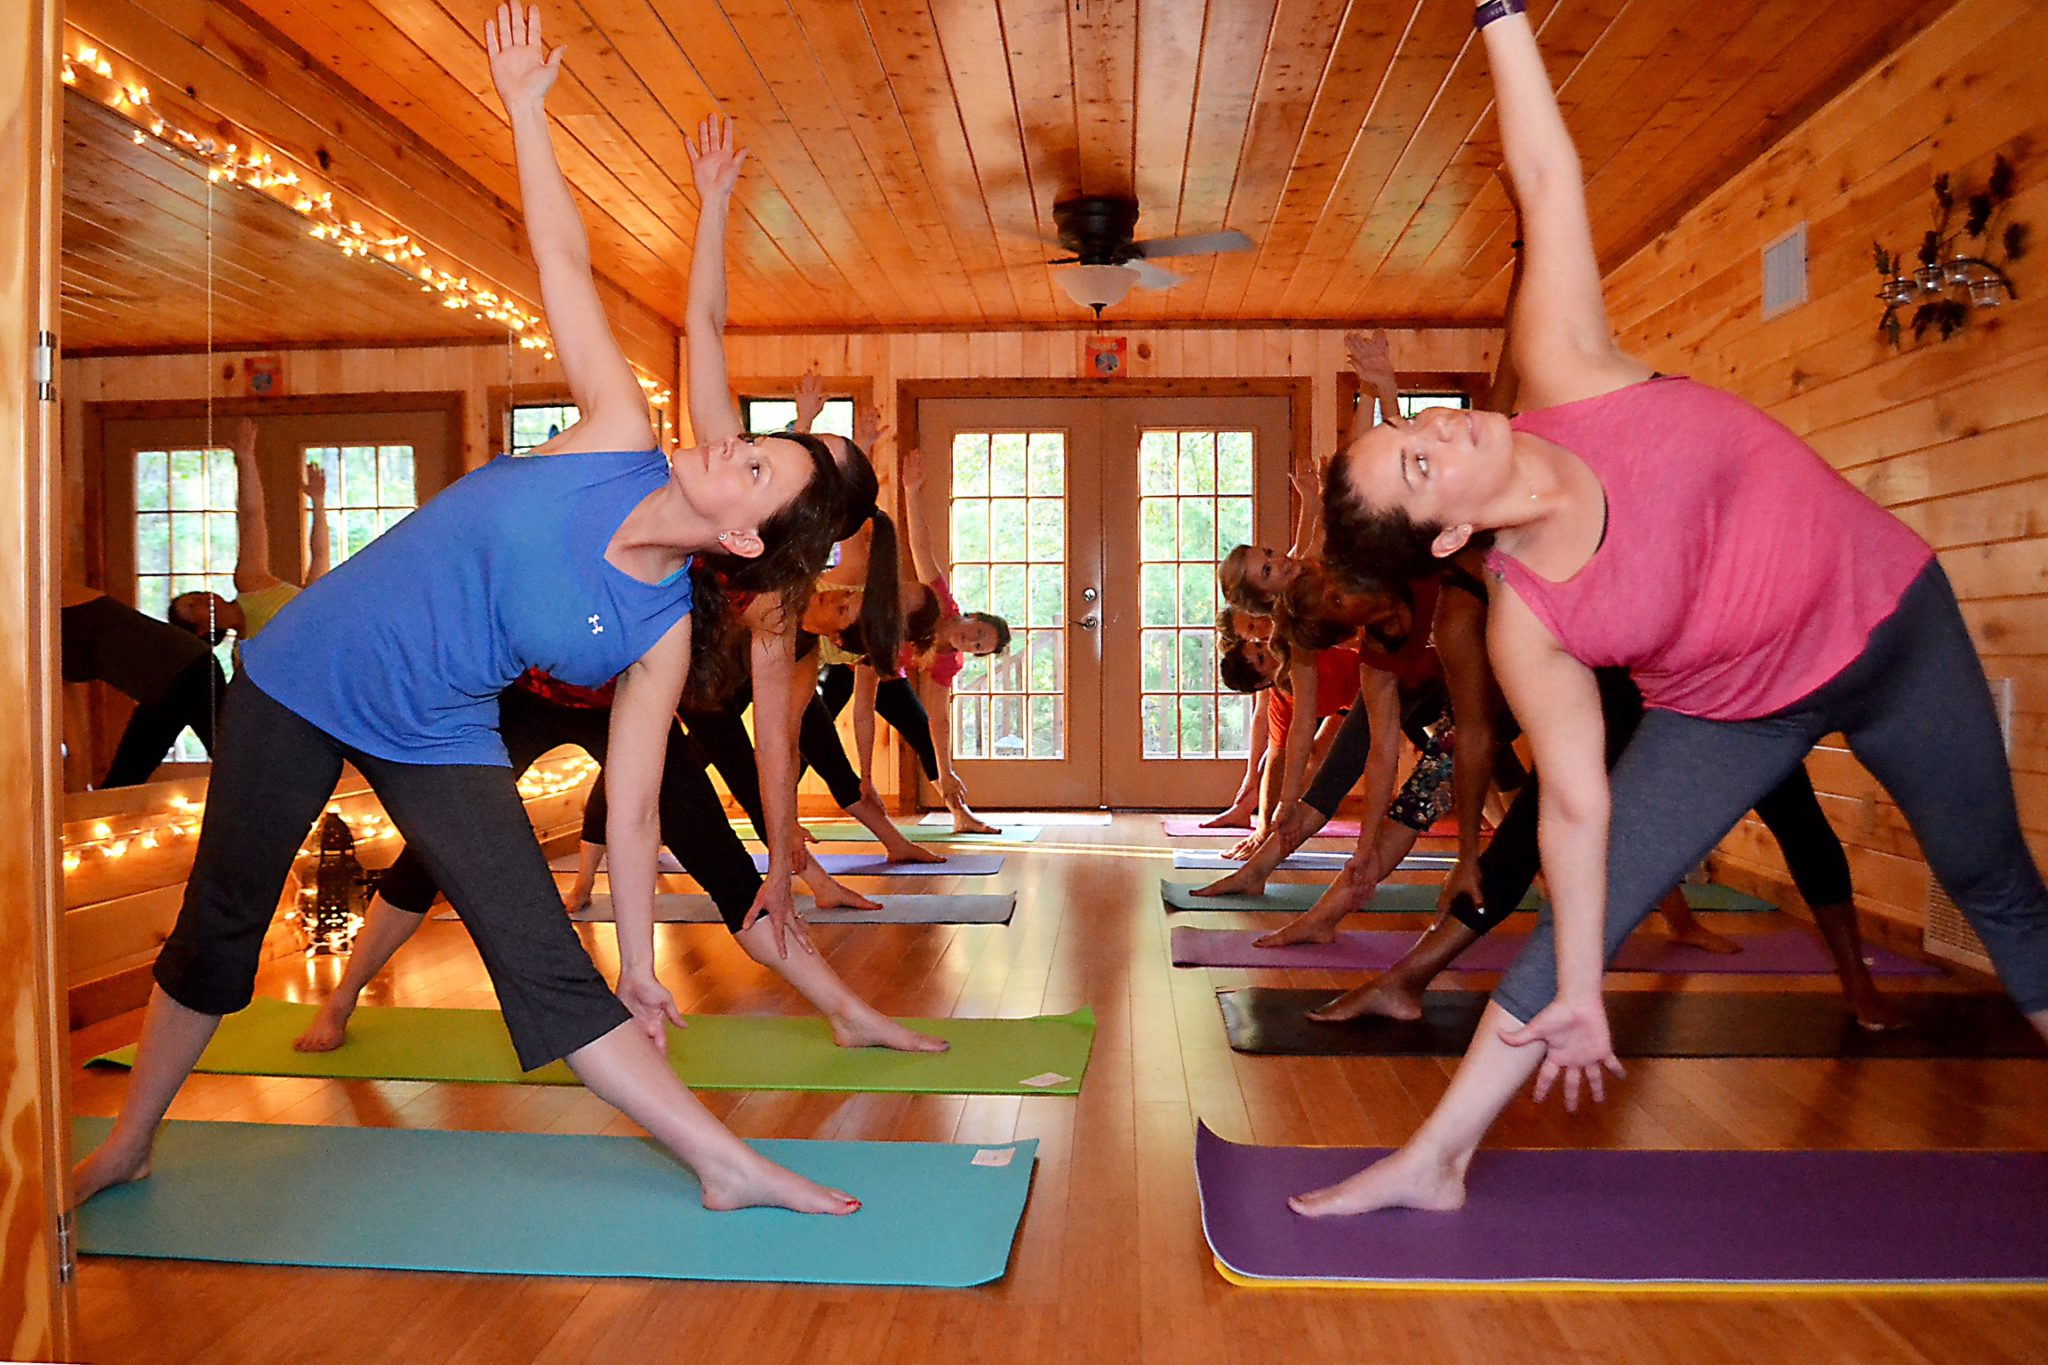 Yoga Retreats: Why They are a Special Experience for Moms